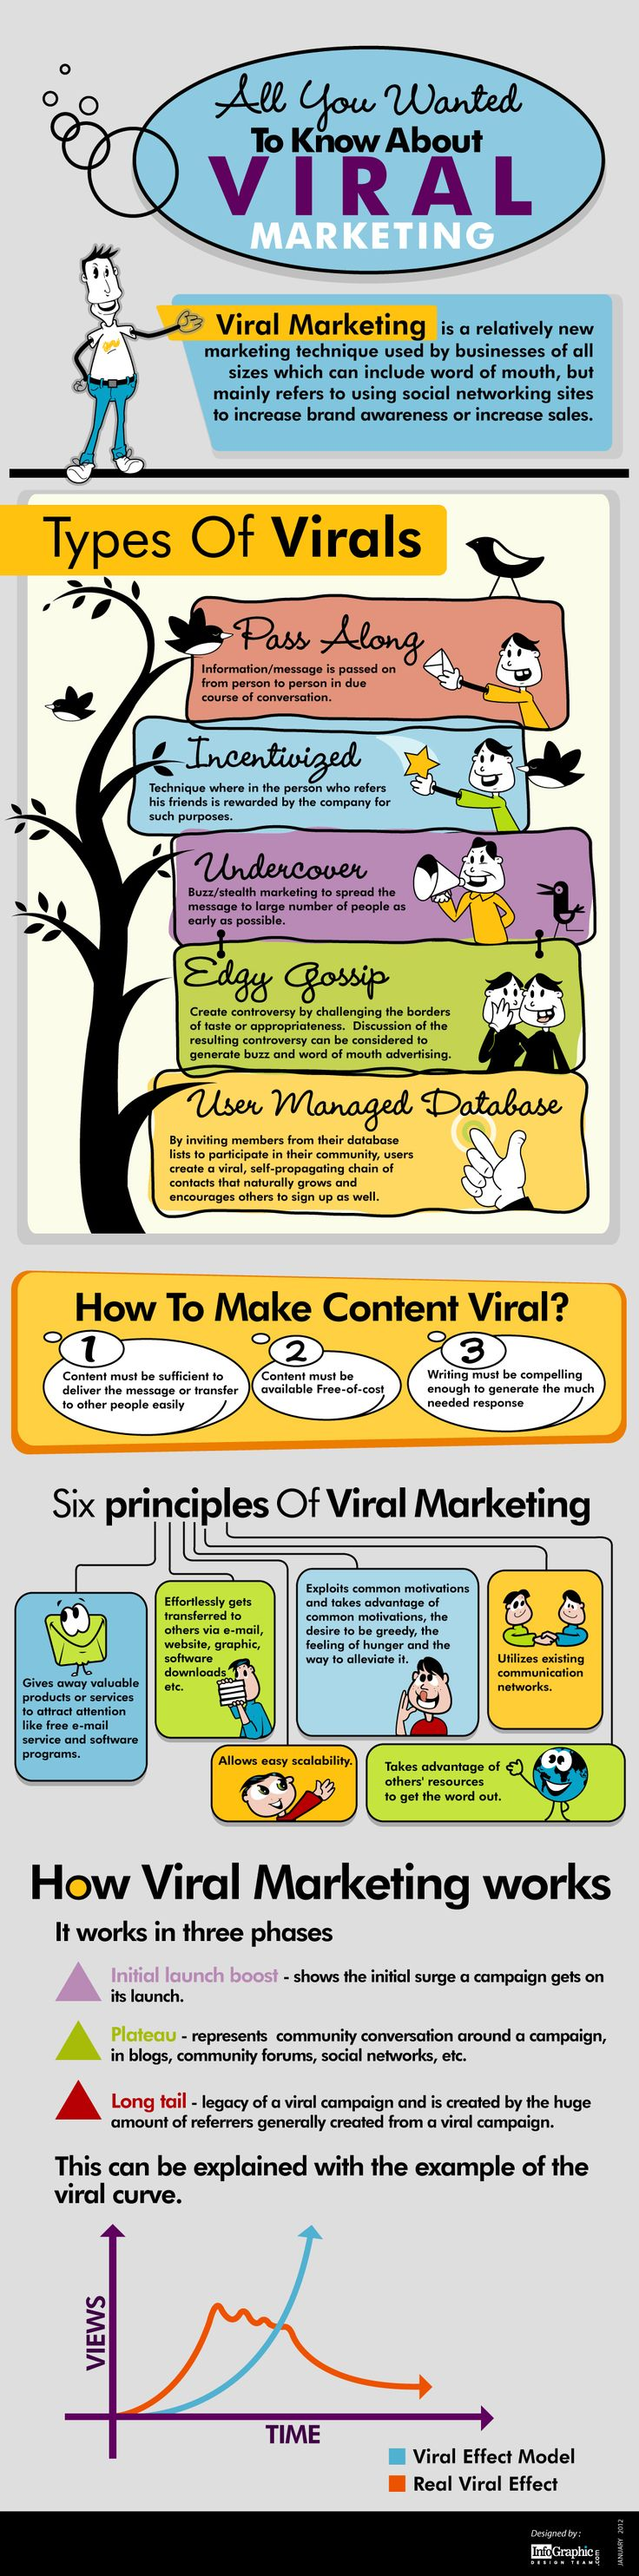 All You Wanted To Know About Viral MarketingMarketing Web,  Internet Site, Social Marketing, Digital Marketing,  Website, Social Media, Viral Marketing, Socialmedia, Marketing Infographic